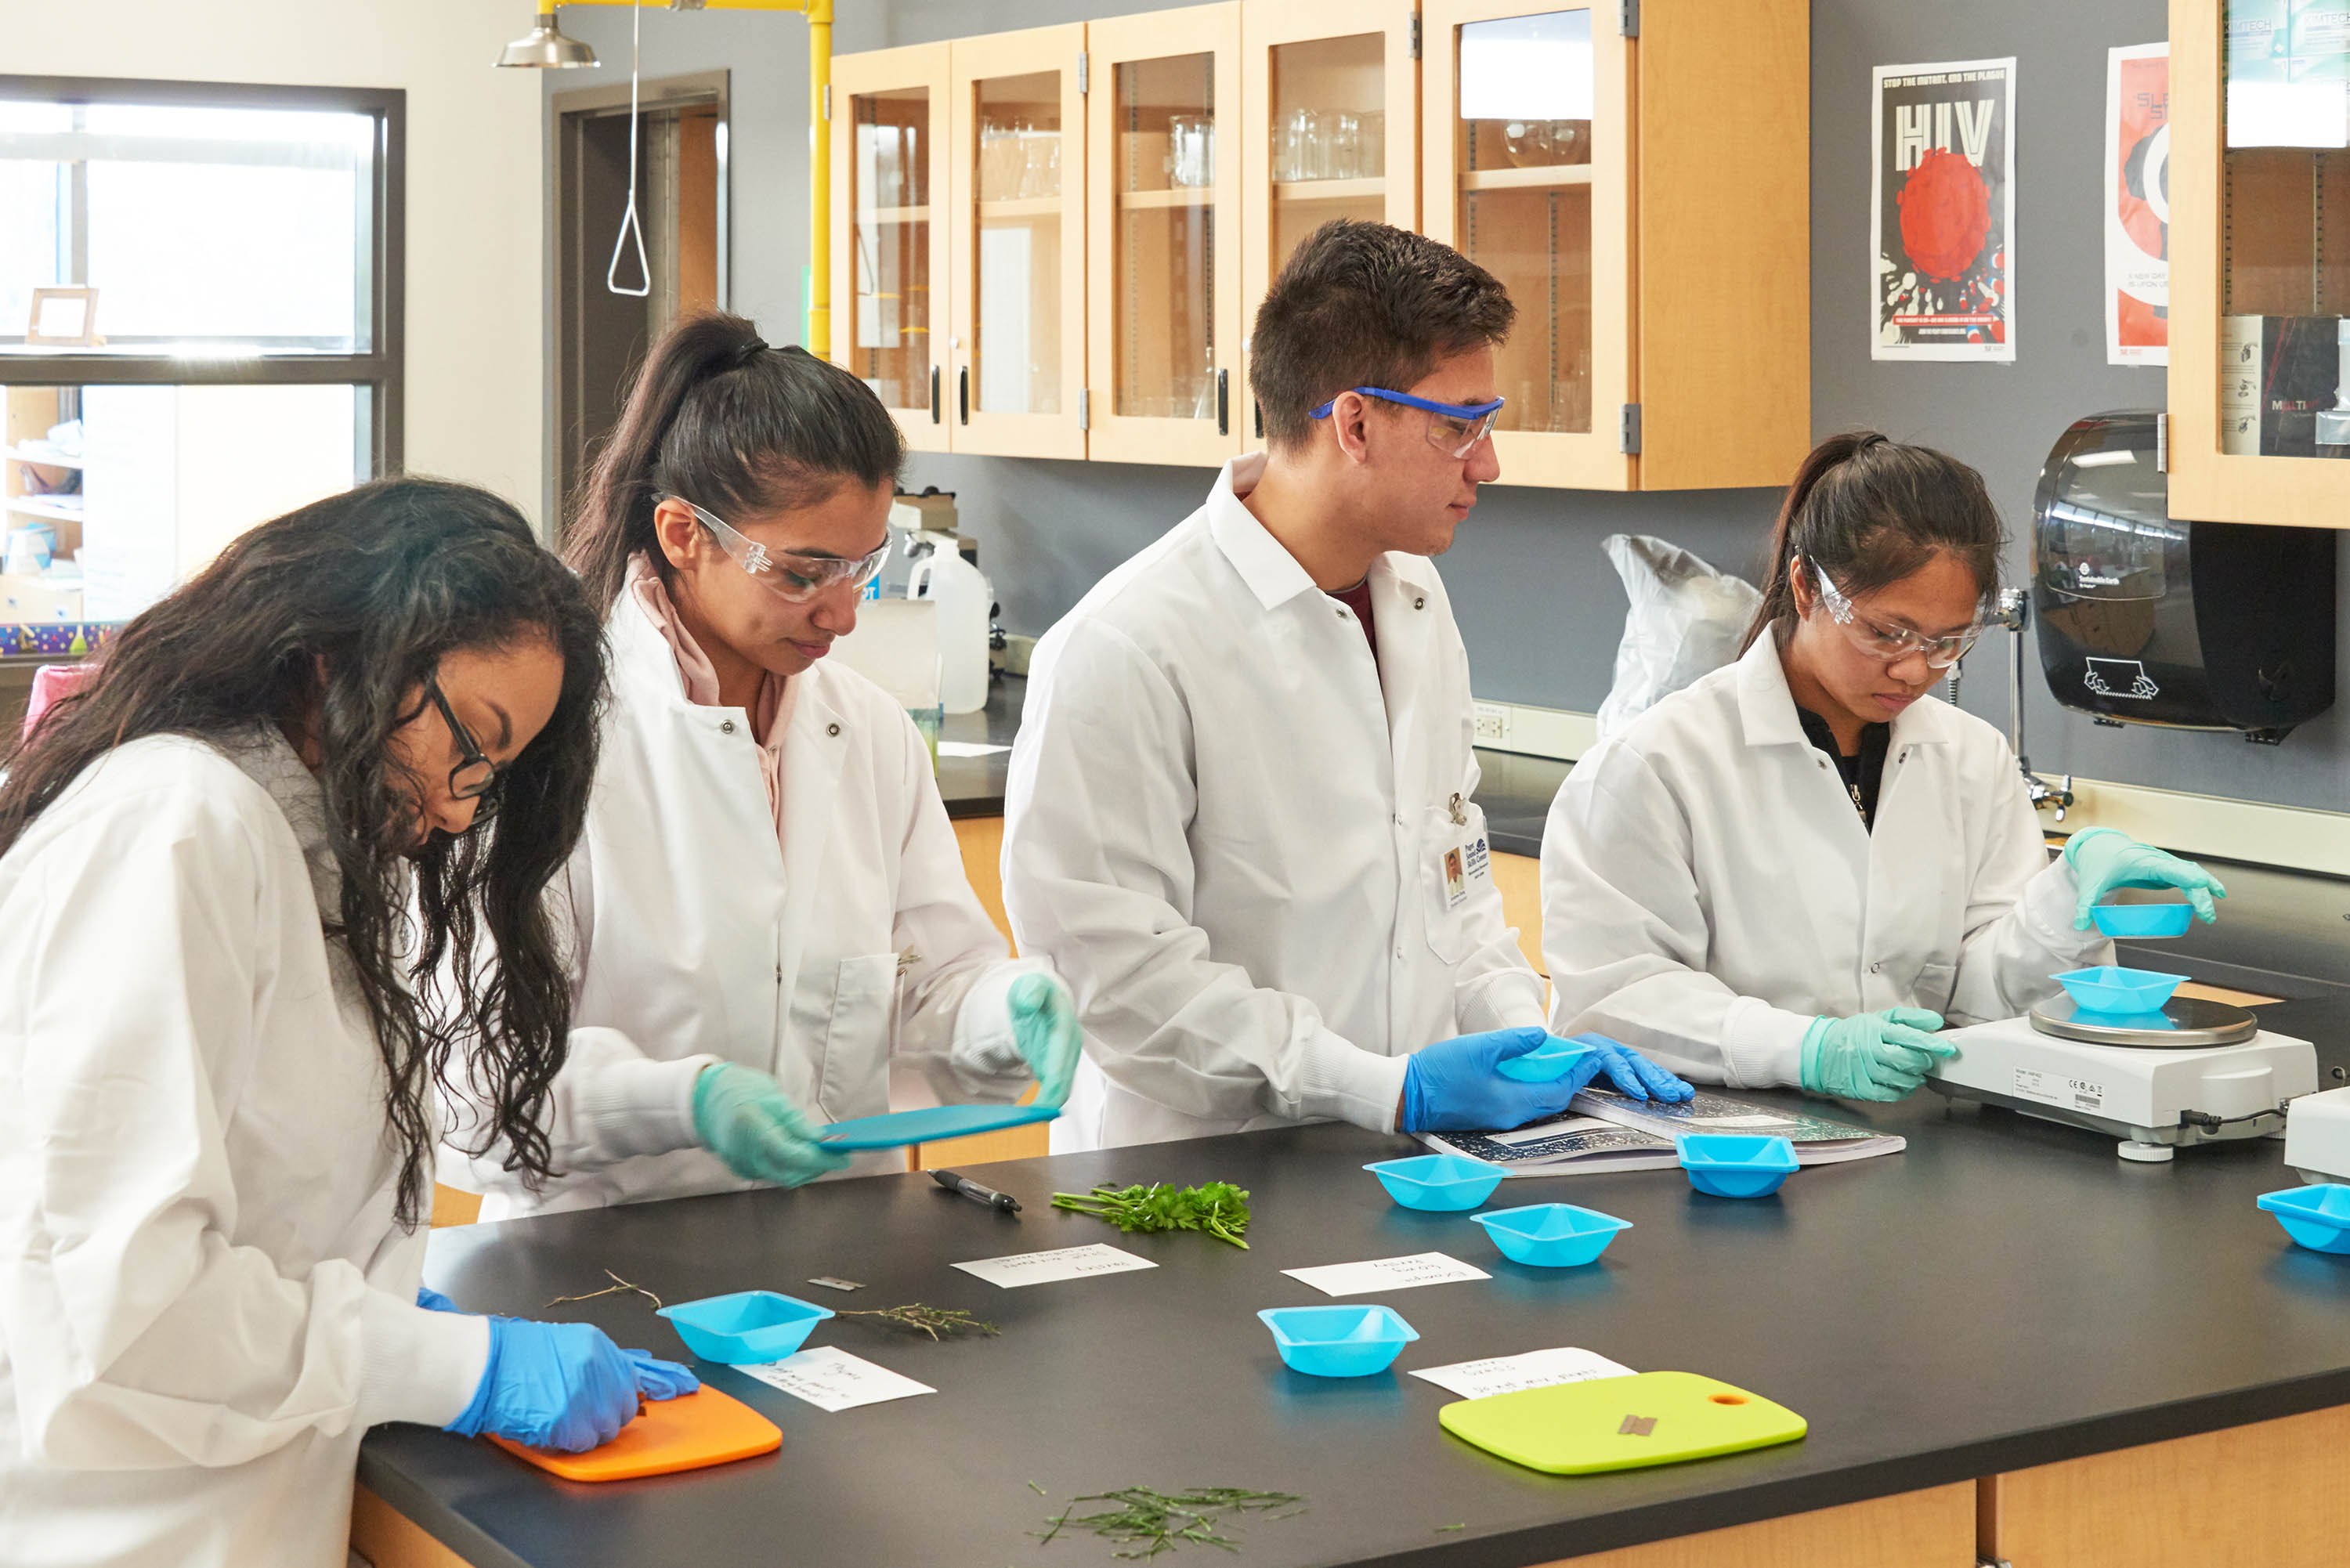 Students in the science lab taking samples from plants.